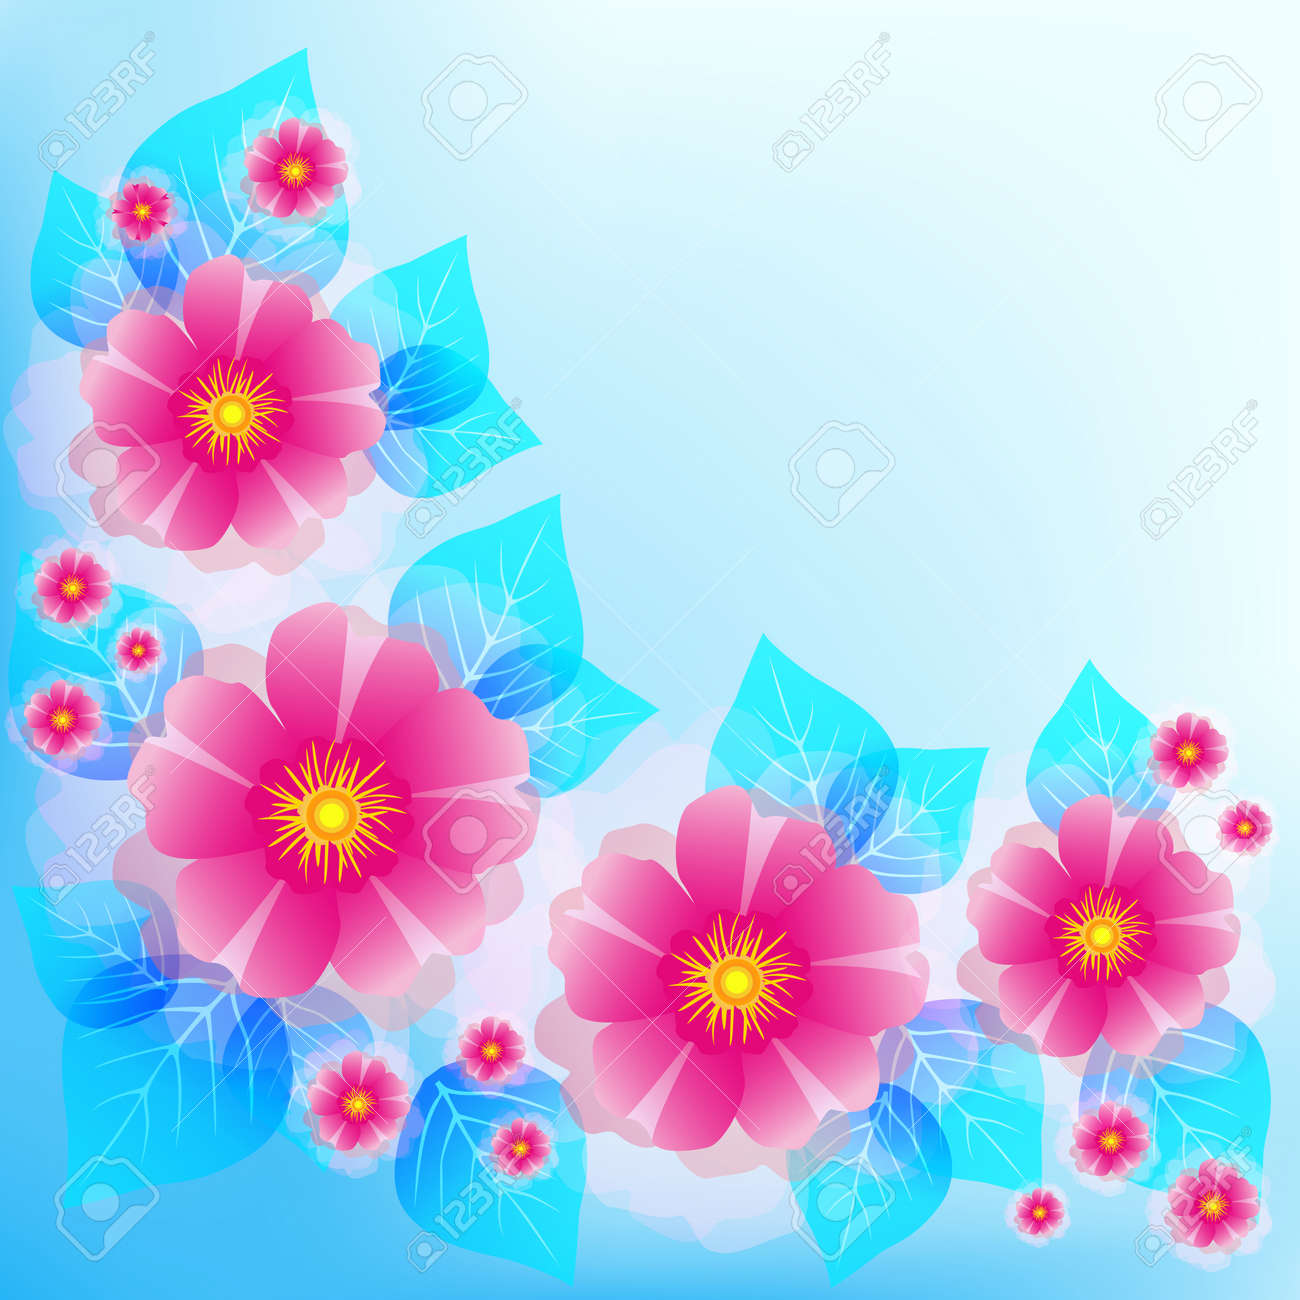 Festive romantic light blue background with pink flowers and festive romantic light blue background with pink flowers and leaves stylish floral wallpaper greeting mightylinksfo